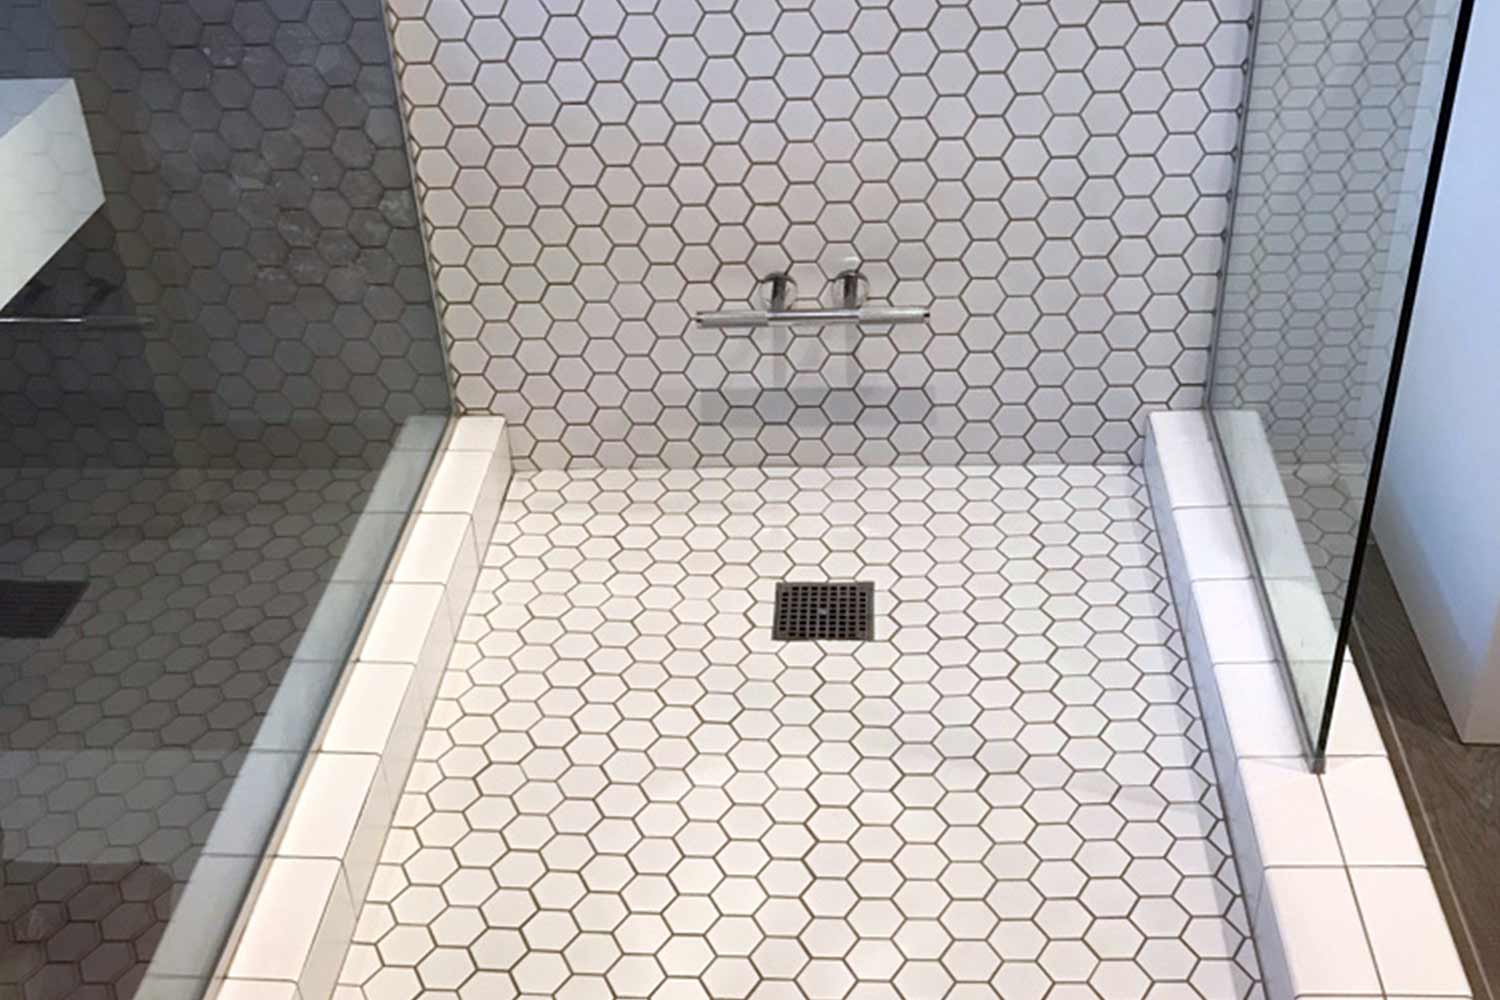 CLEANING & SEALING - Our extensive restorative process will make your tile, grout and natural stone look sparkling clean, a result that can only be attained through professional tile and grout cleaningSEALX provides tile and grout cleaning and restoration service blends our deep-cleaning process and our advanced grout sealing techniques that not only cleans and restores your tile and grout to a more attractive condition, but also waterproofs your grout for additional protection.* FLOOR WALLS * COUNTERTOPS & VANITIES * BATHROOMS & SHOWERS * DRIVEWAYS & PATIO * INTERIOR & EXTERIOR * RESIDENTIAL & COMMERCIAL